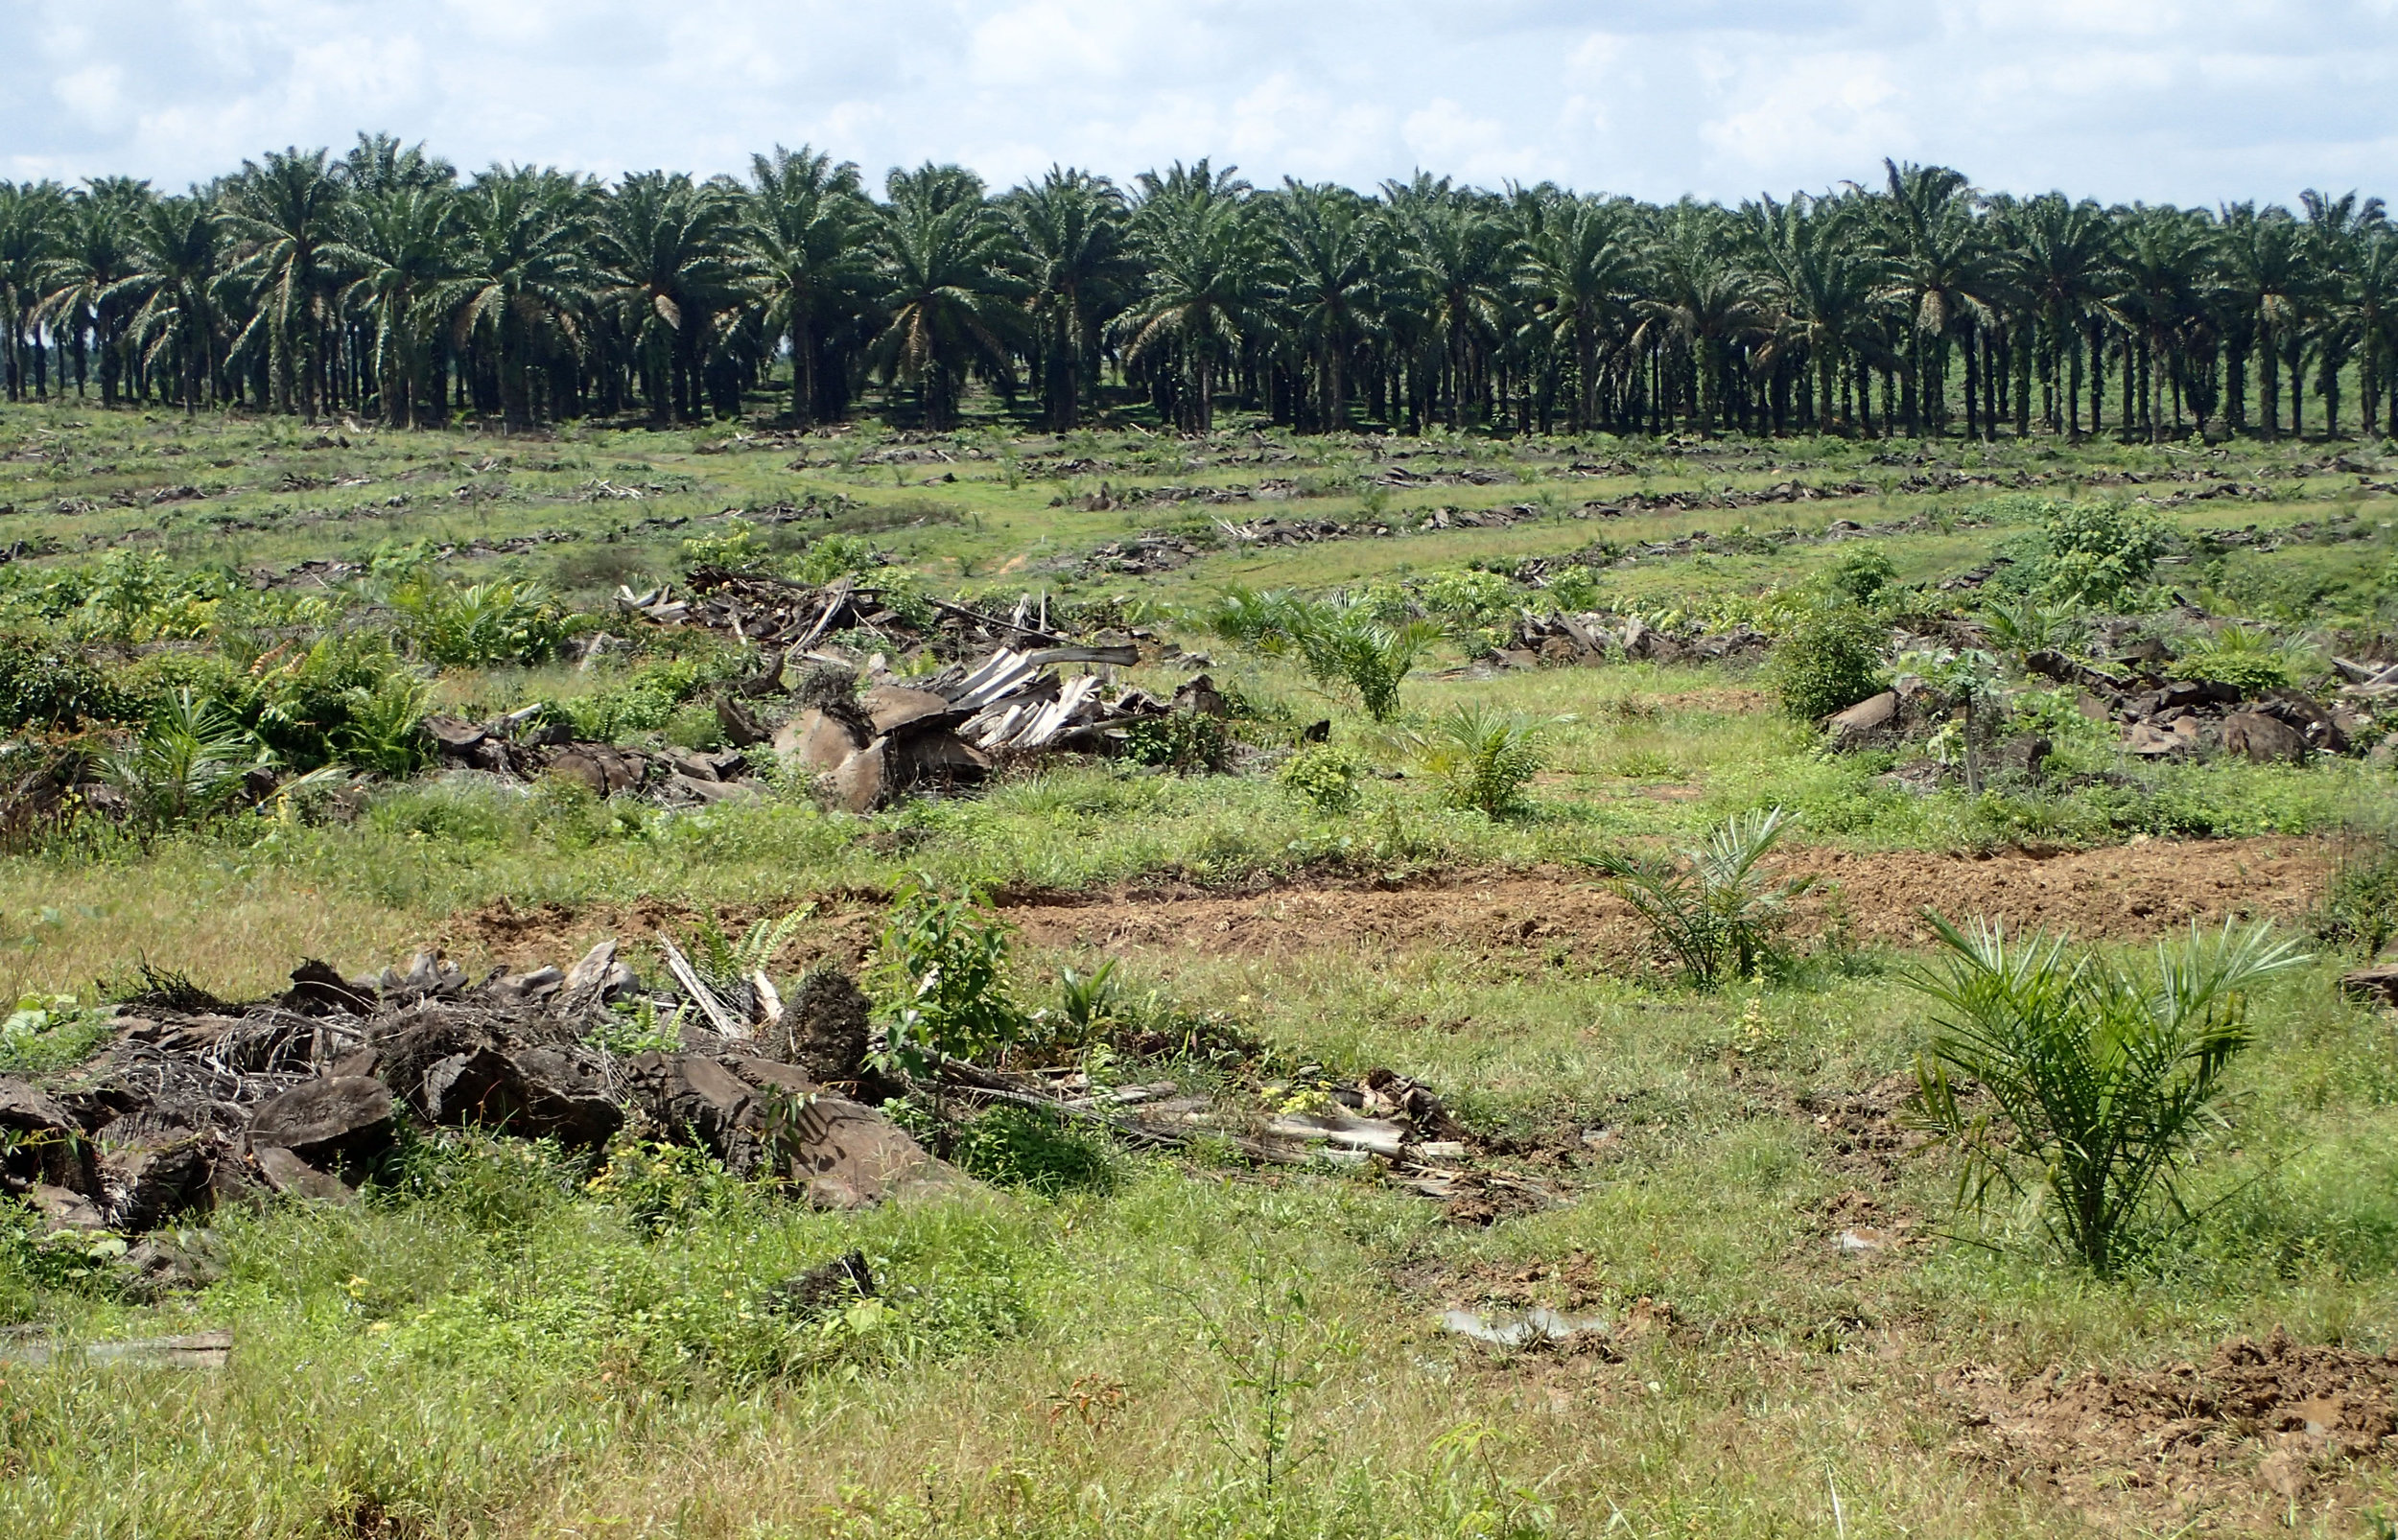 Recently planted oil palms in Cinta Damai, Musi Banyuasin District, South Sumatra.